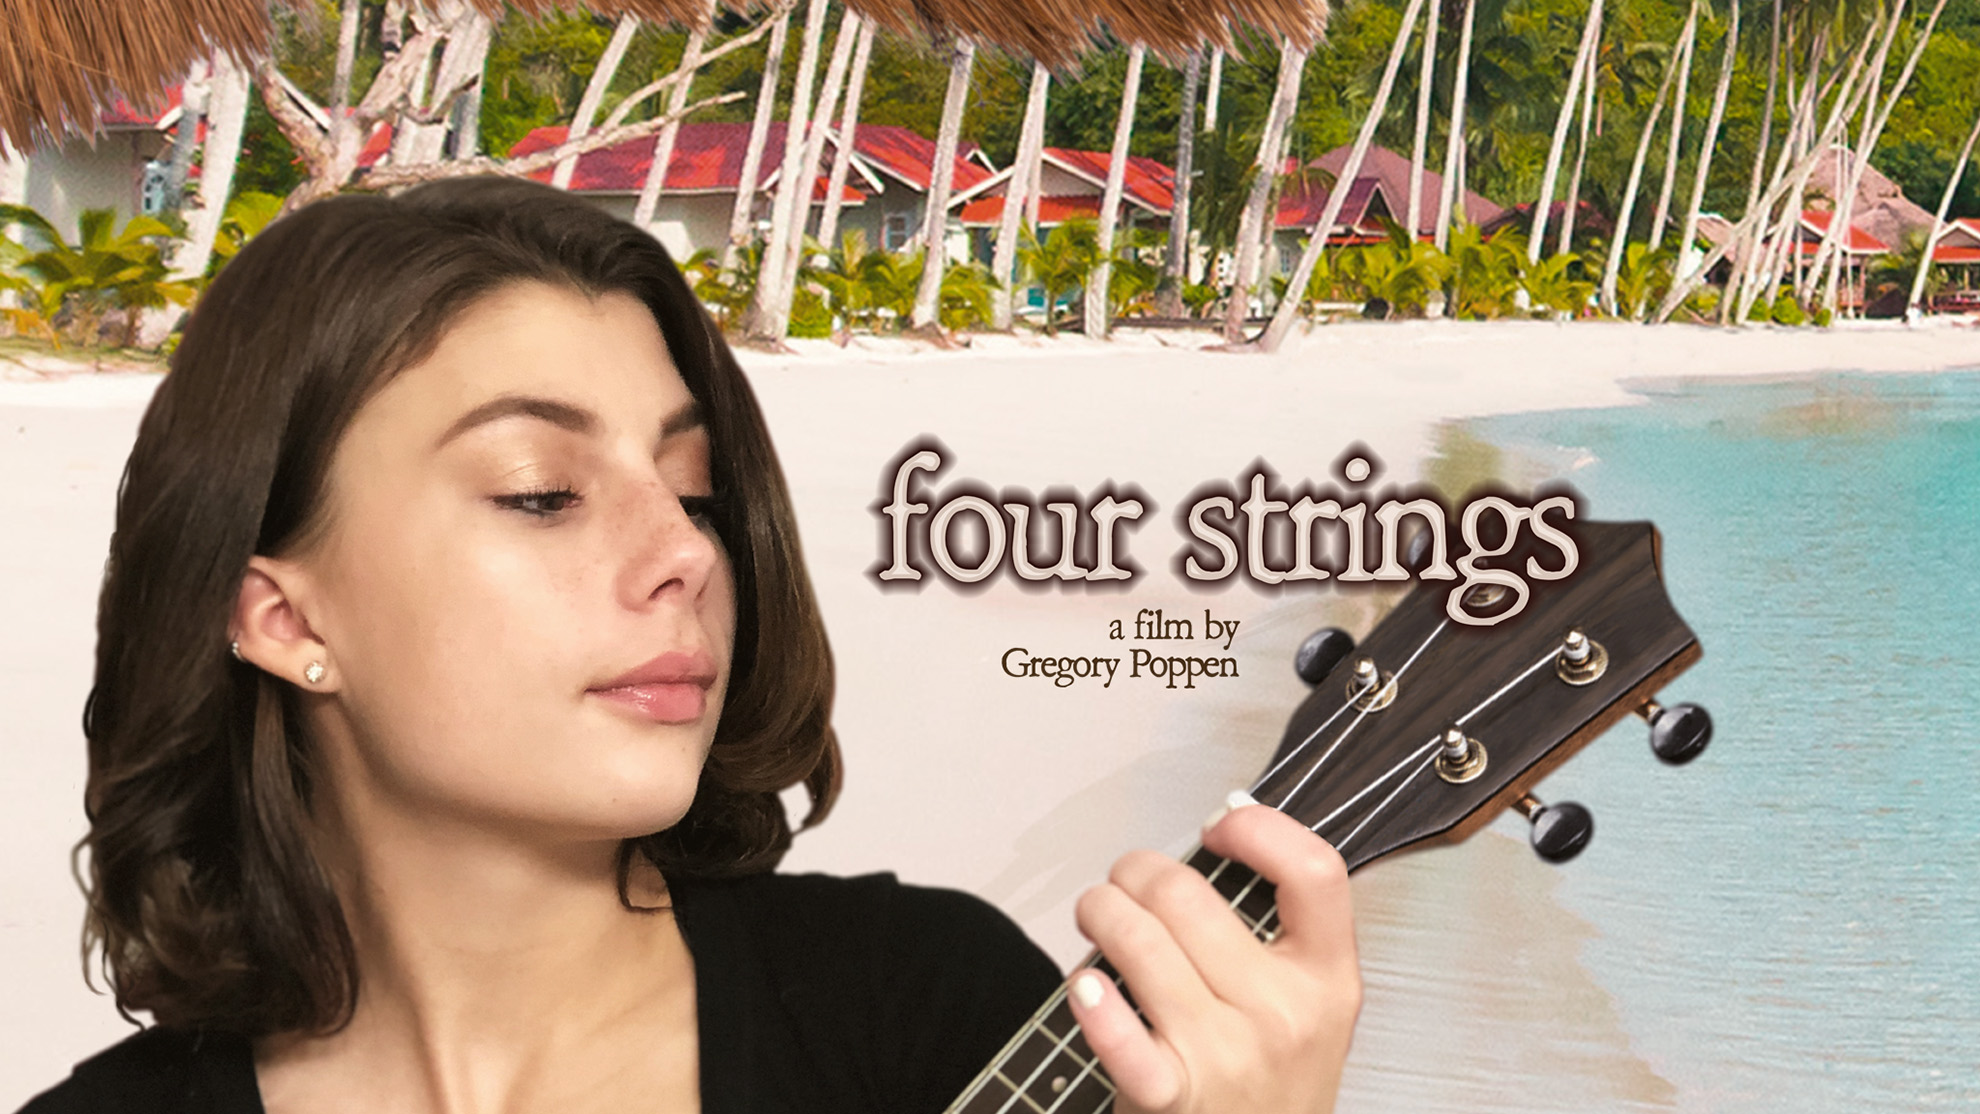 Four Strings - A Film by Gregory Poppen